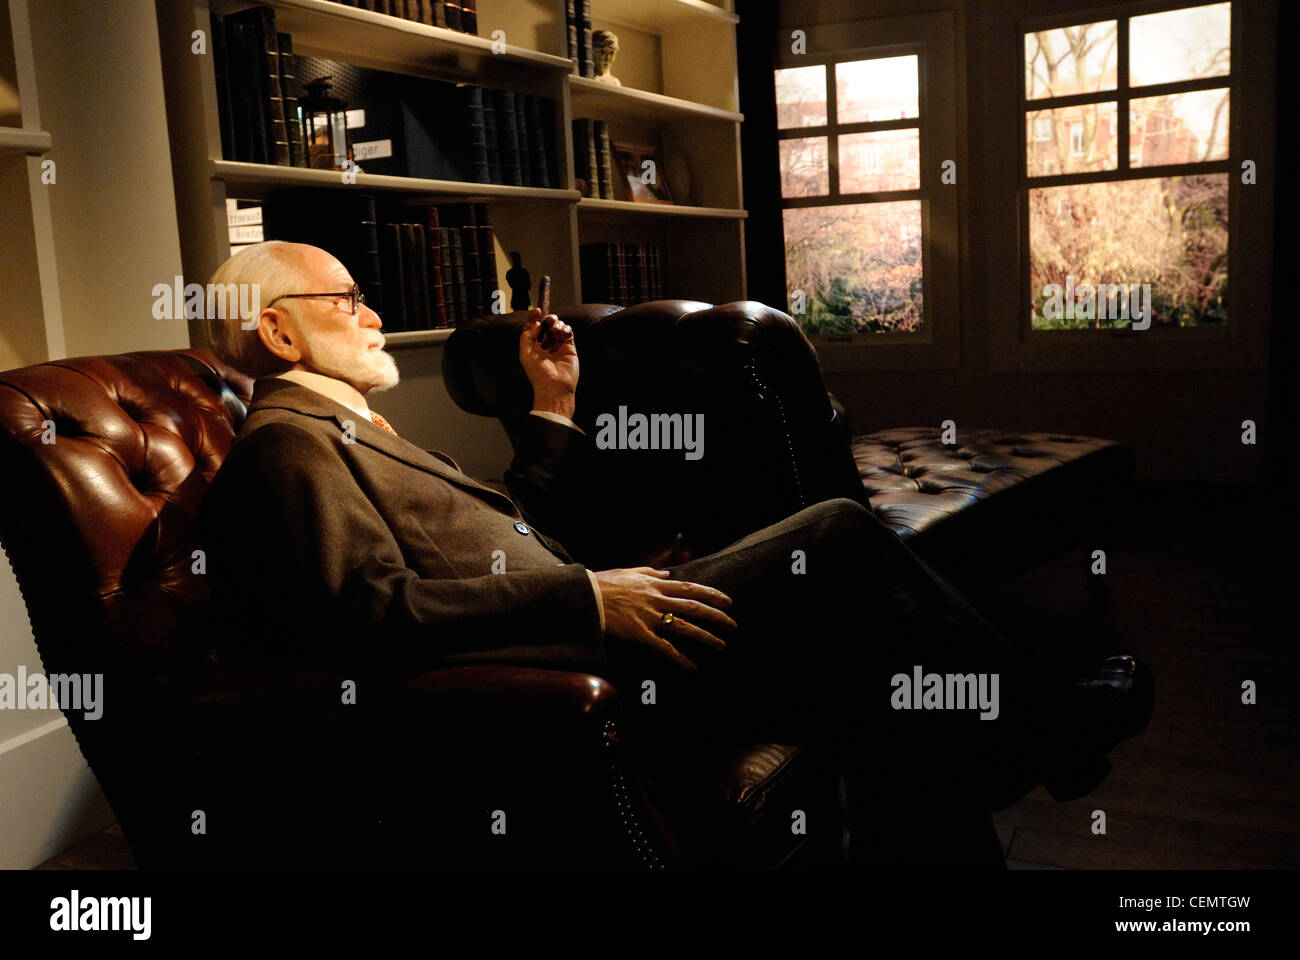 Sigmund Freud as a wax figure in Madame Tussauds Wax Museum, Unter den Linden 74, Berlin, Germany, Europe - Stock Image